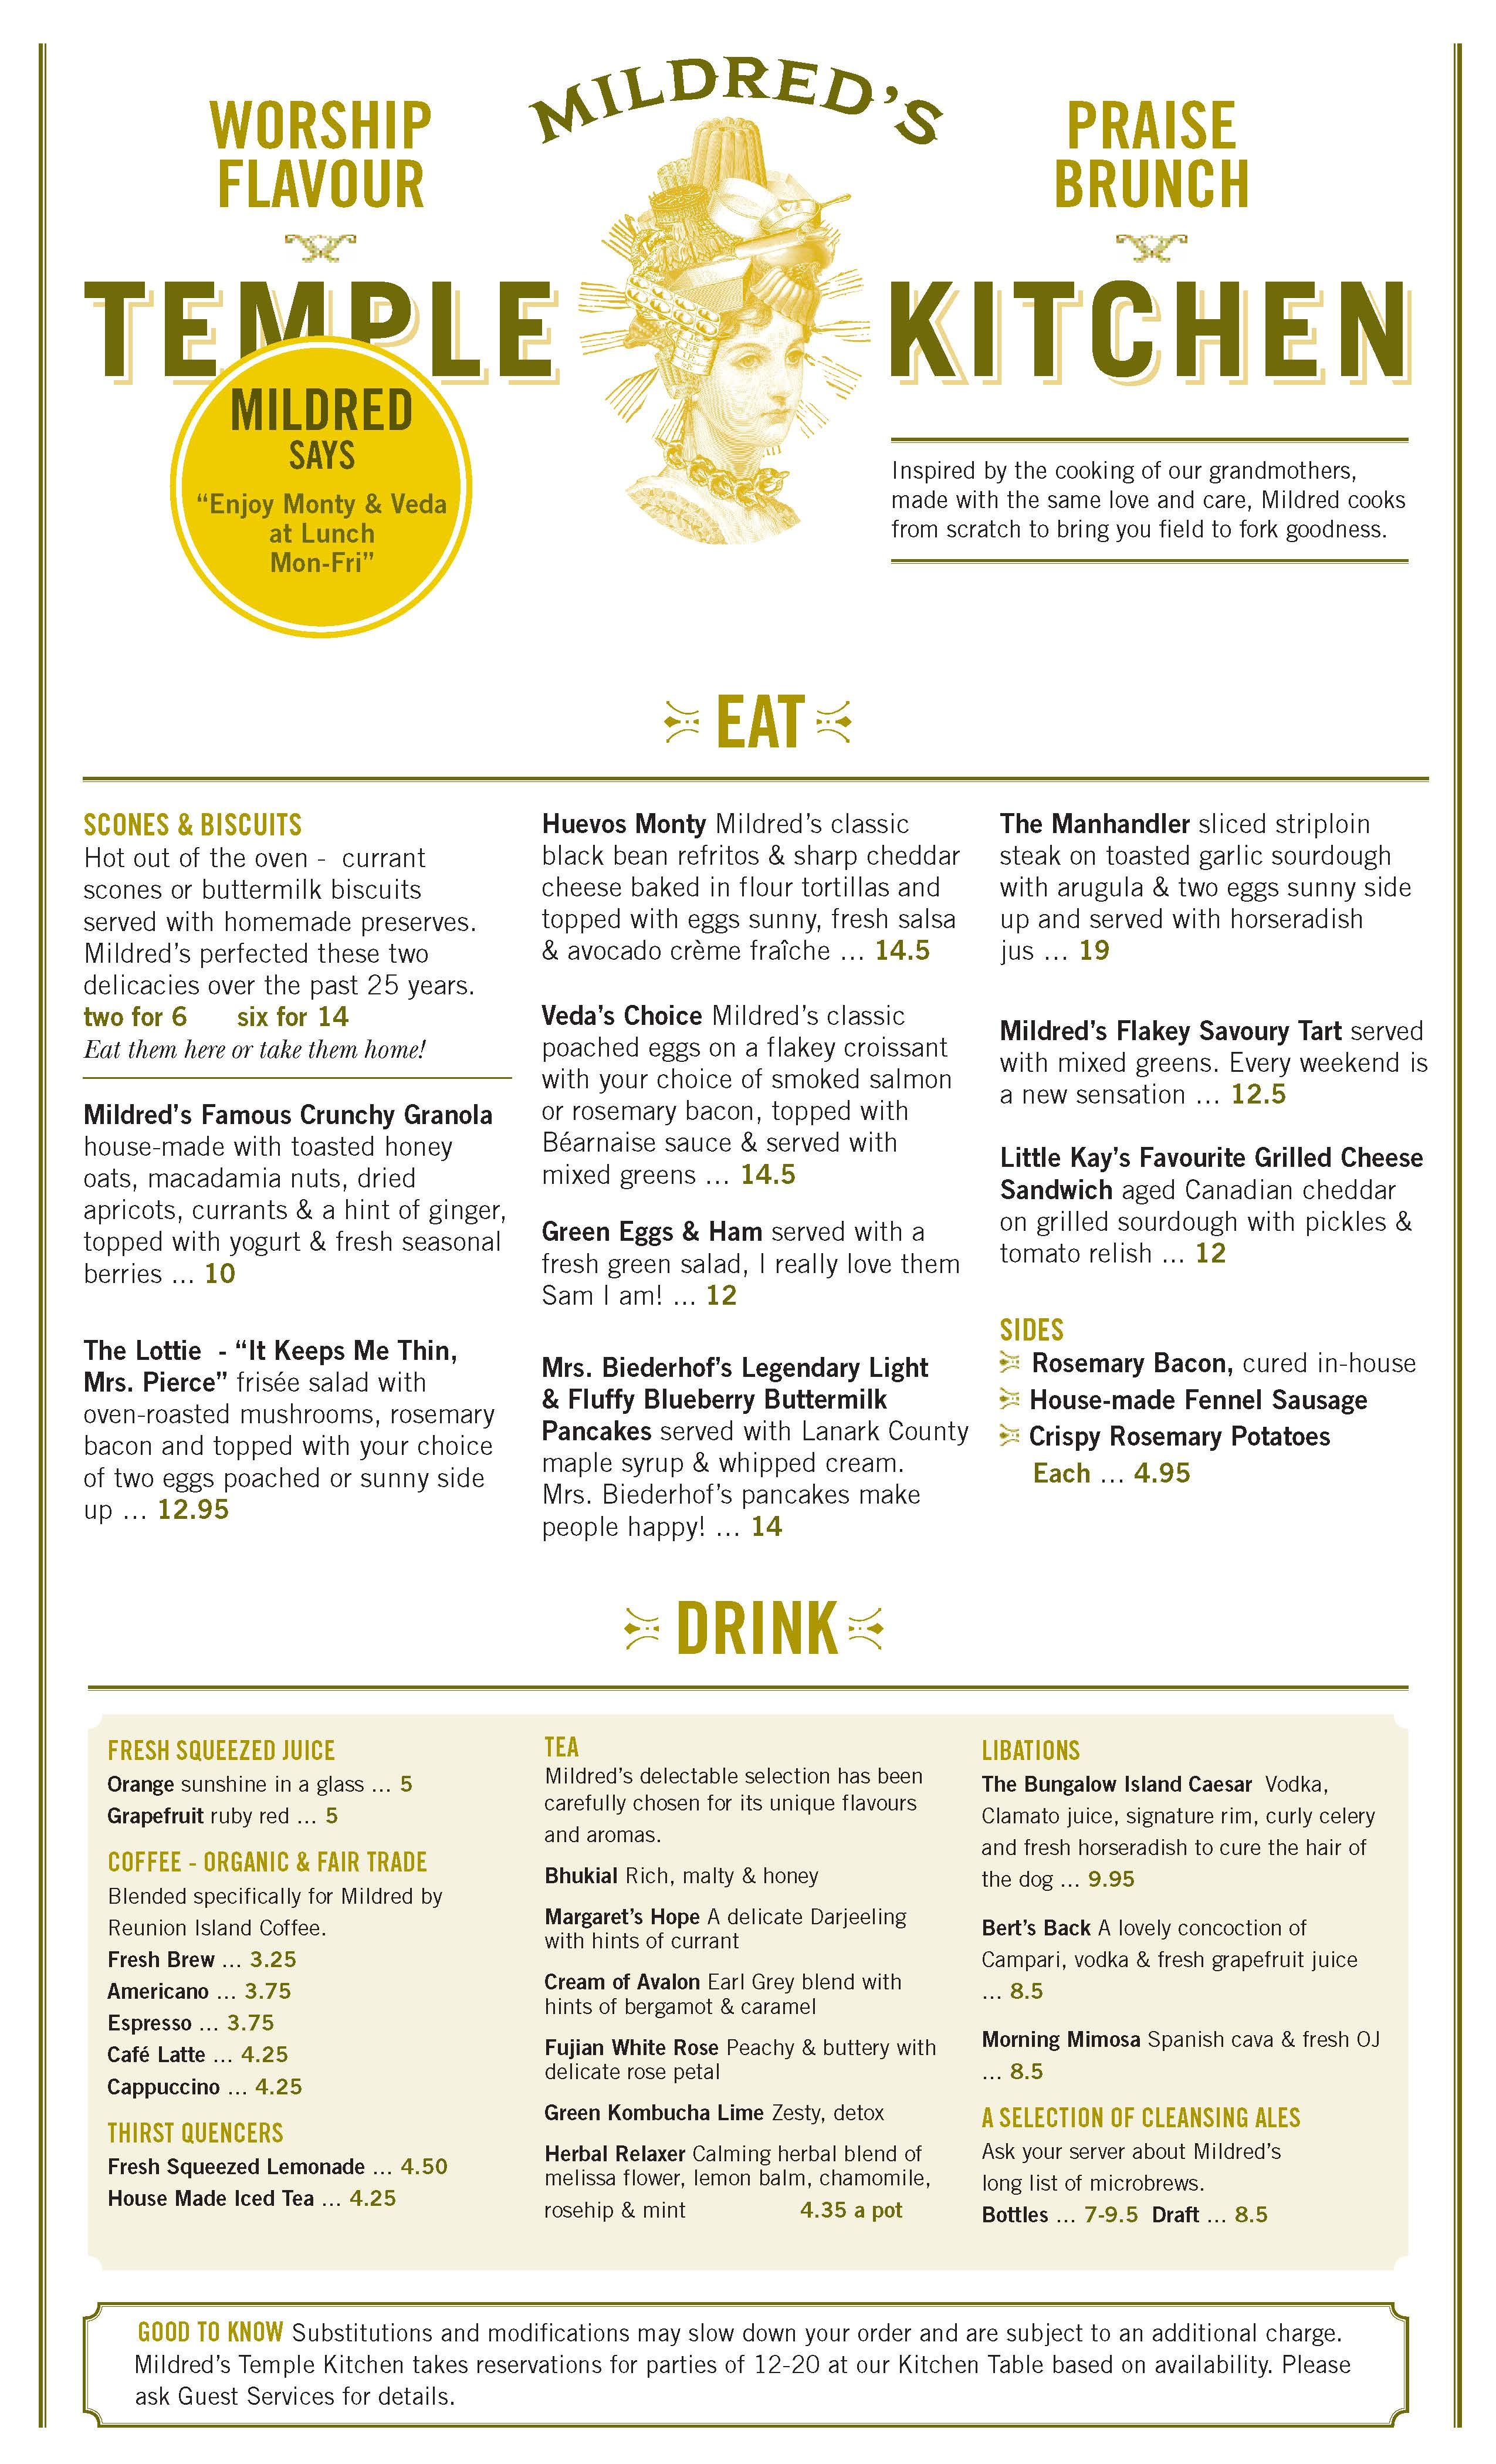 Mildred S Temple Kitchen Brunch Menu Chinese New Year Food Menu Inspiration Wedding Food Bars